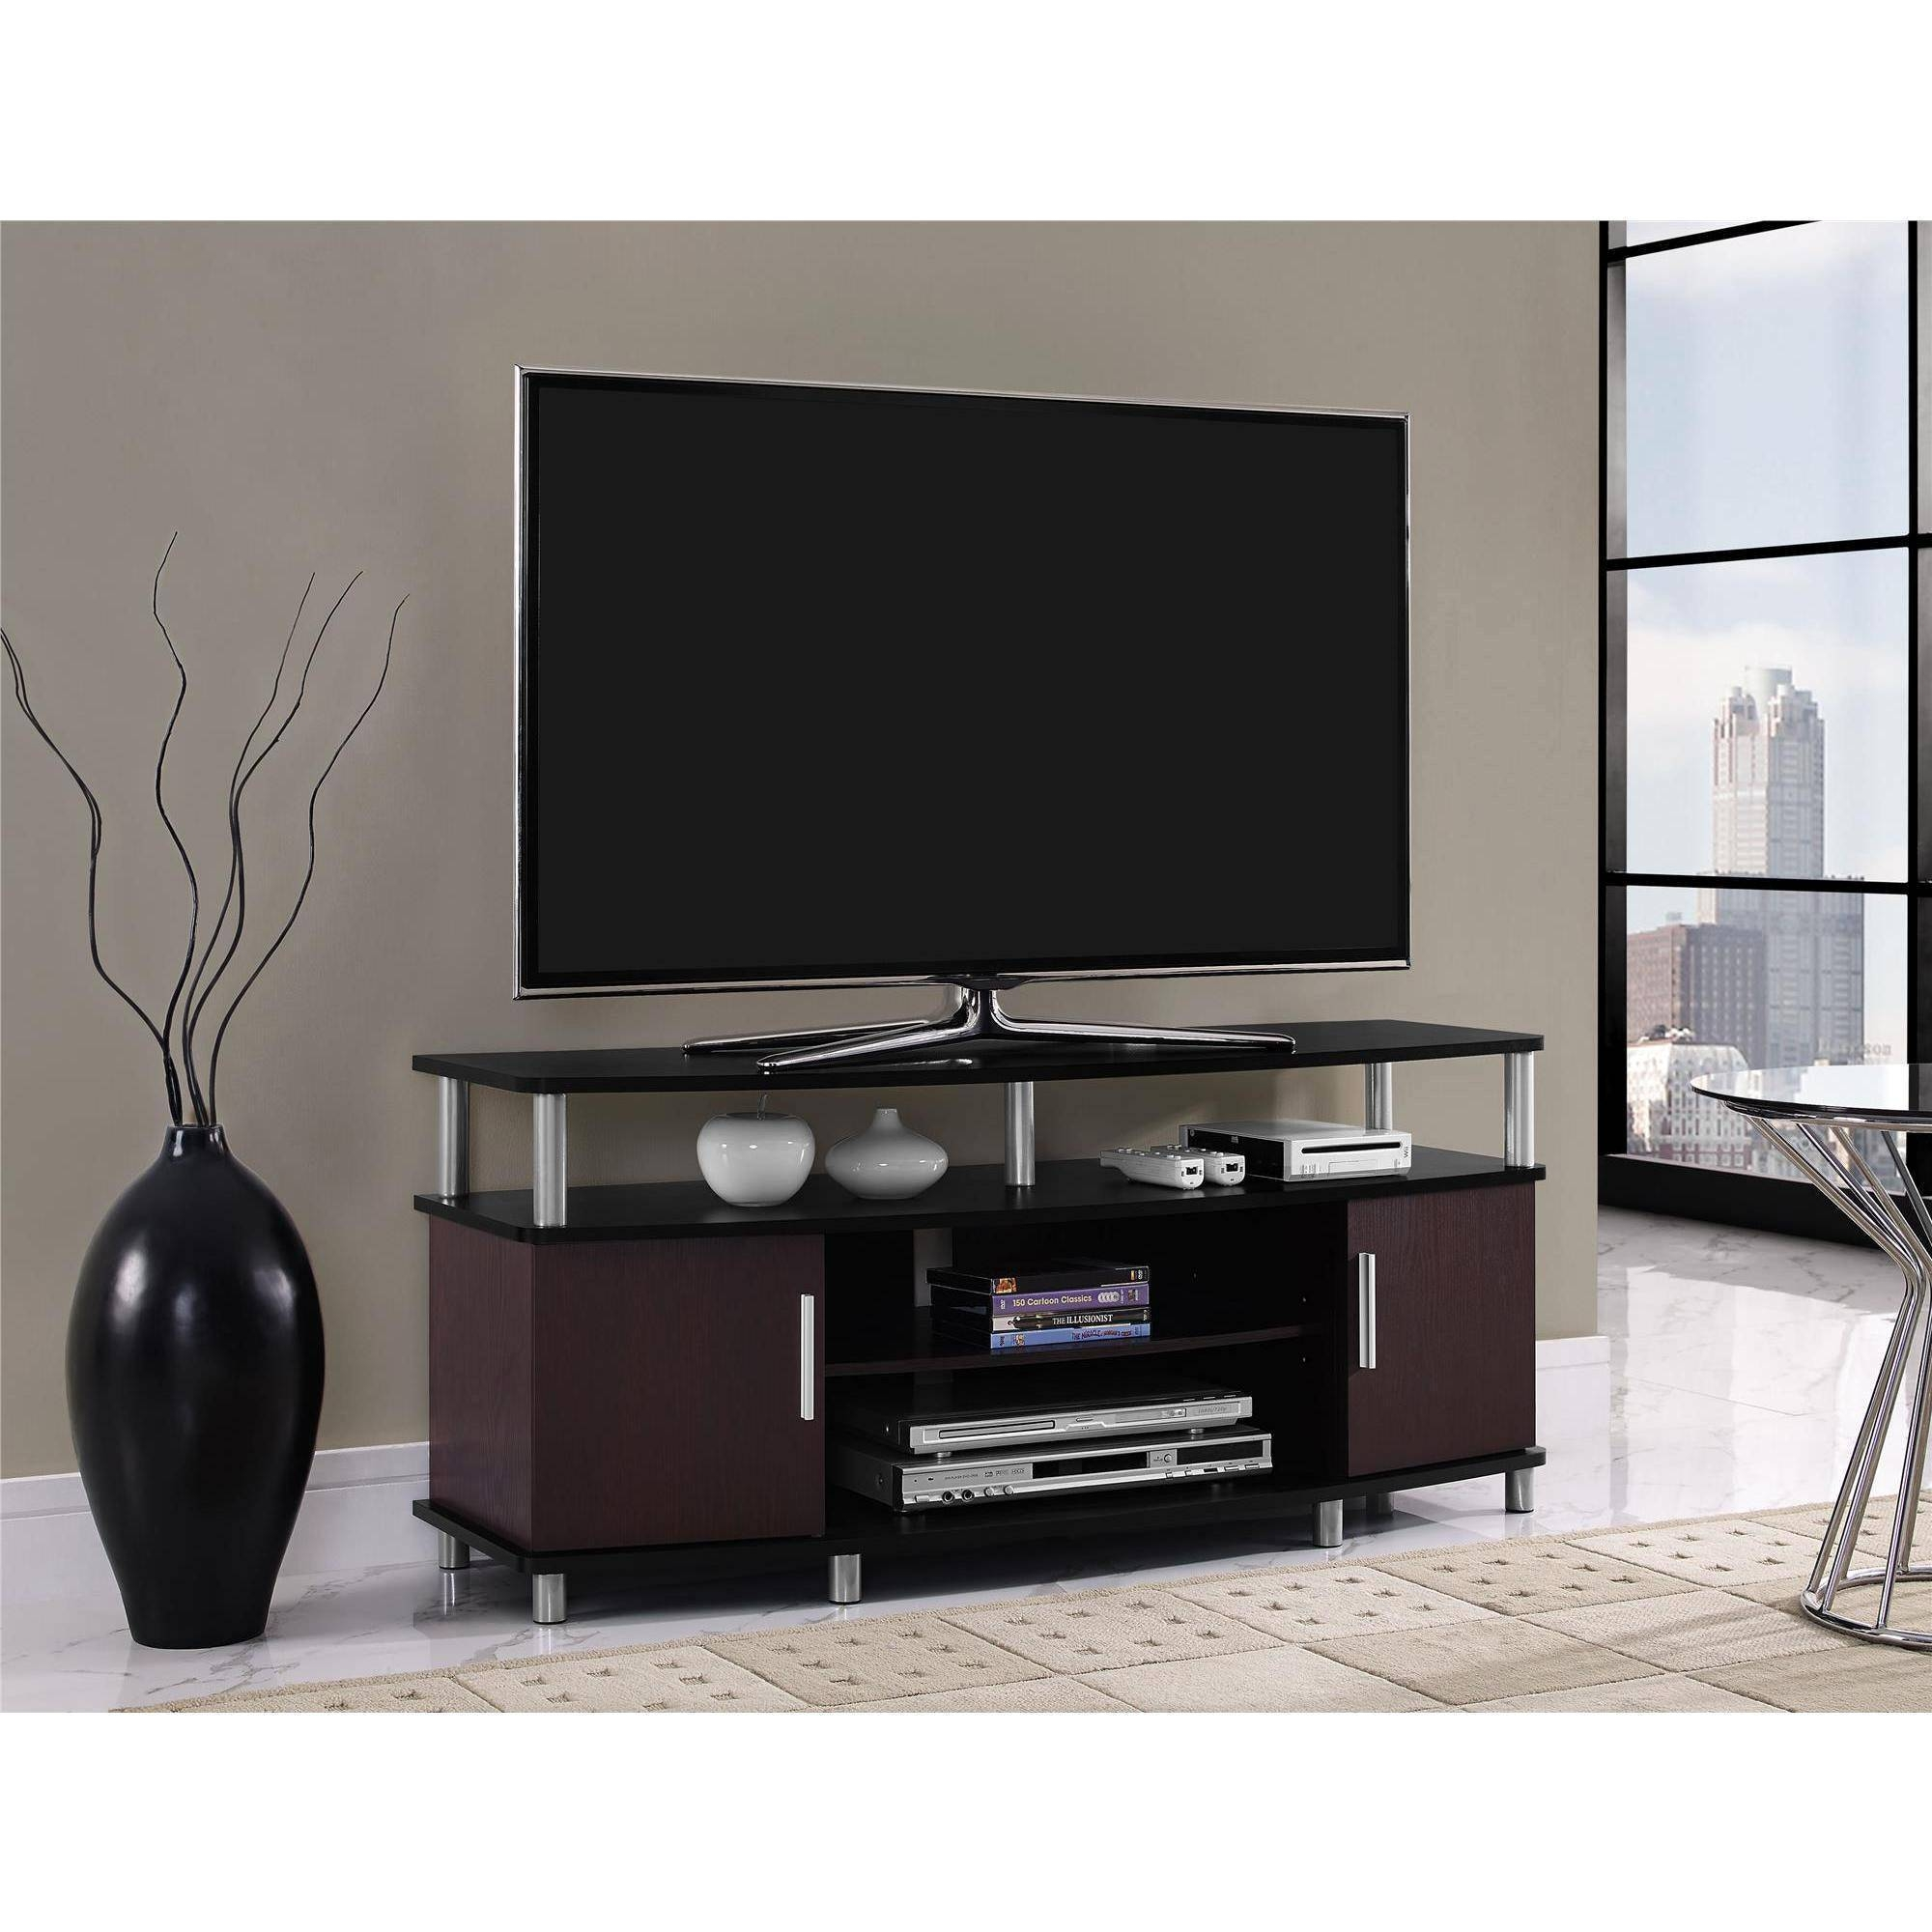 Modern Exhibition Stand Near Me : Best collection of modern tv stands for flat screens